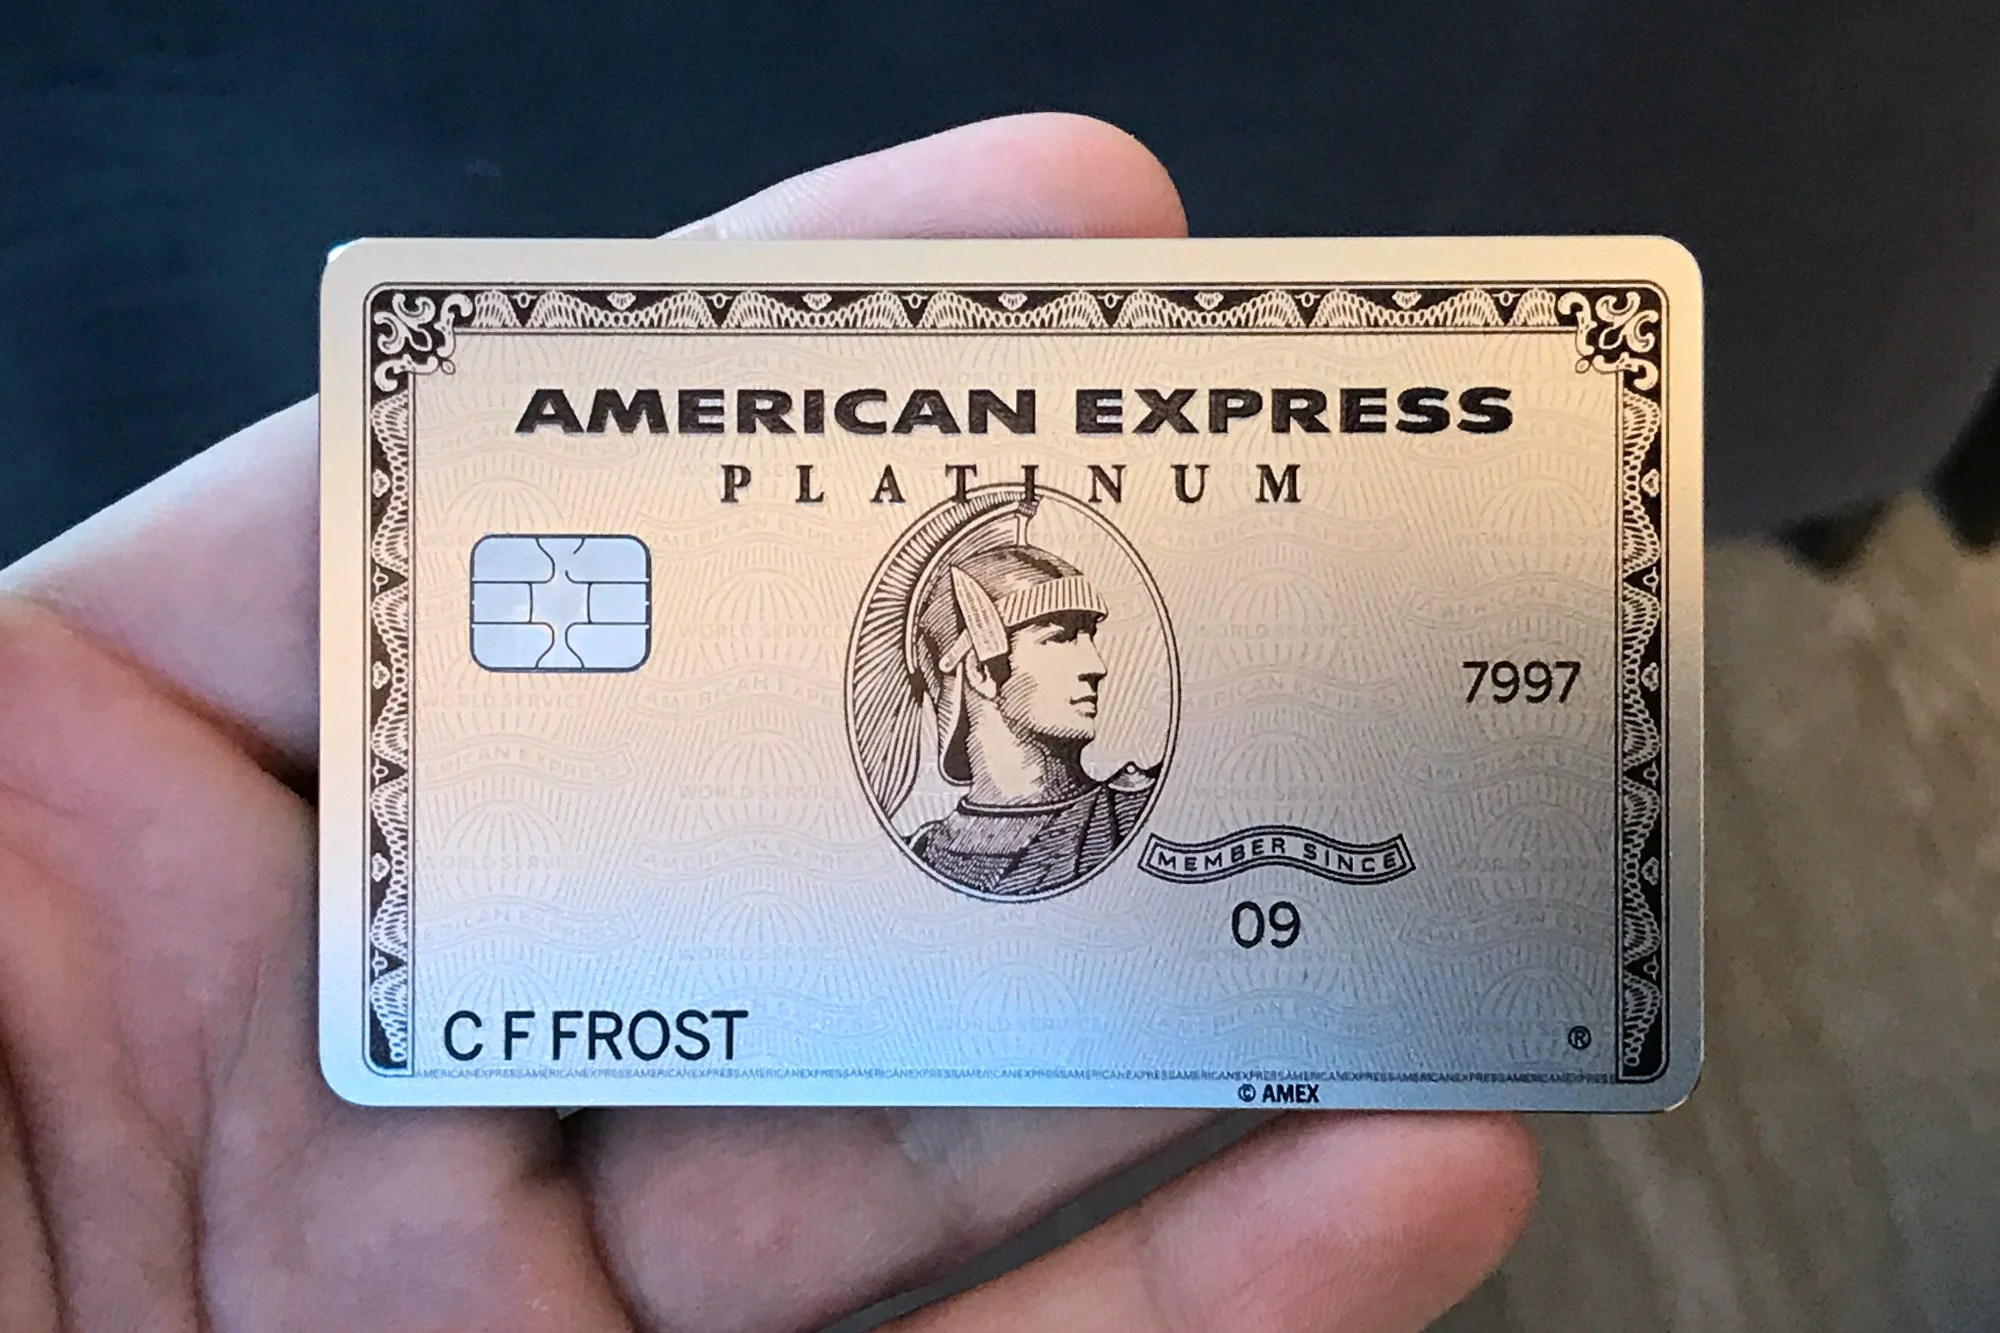 Review: The Platinum Card from American Express